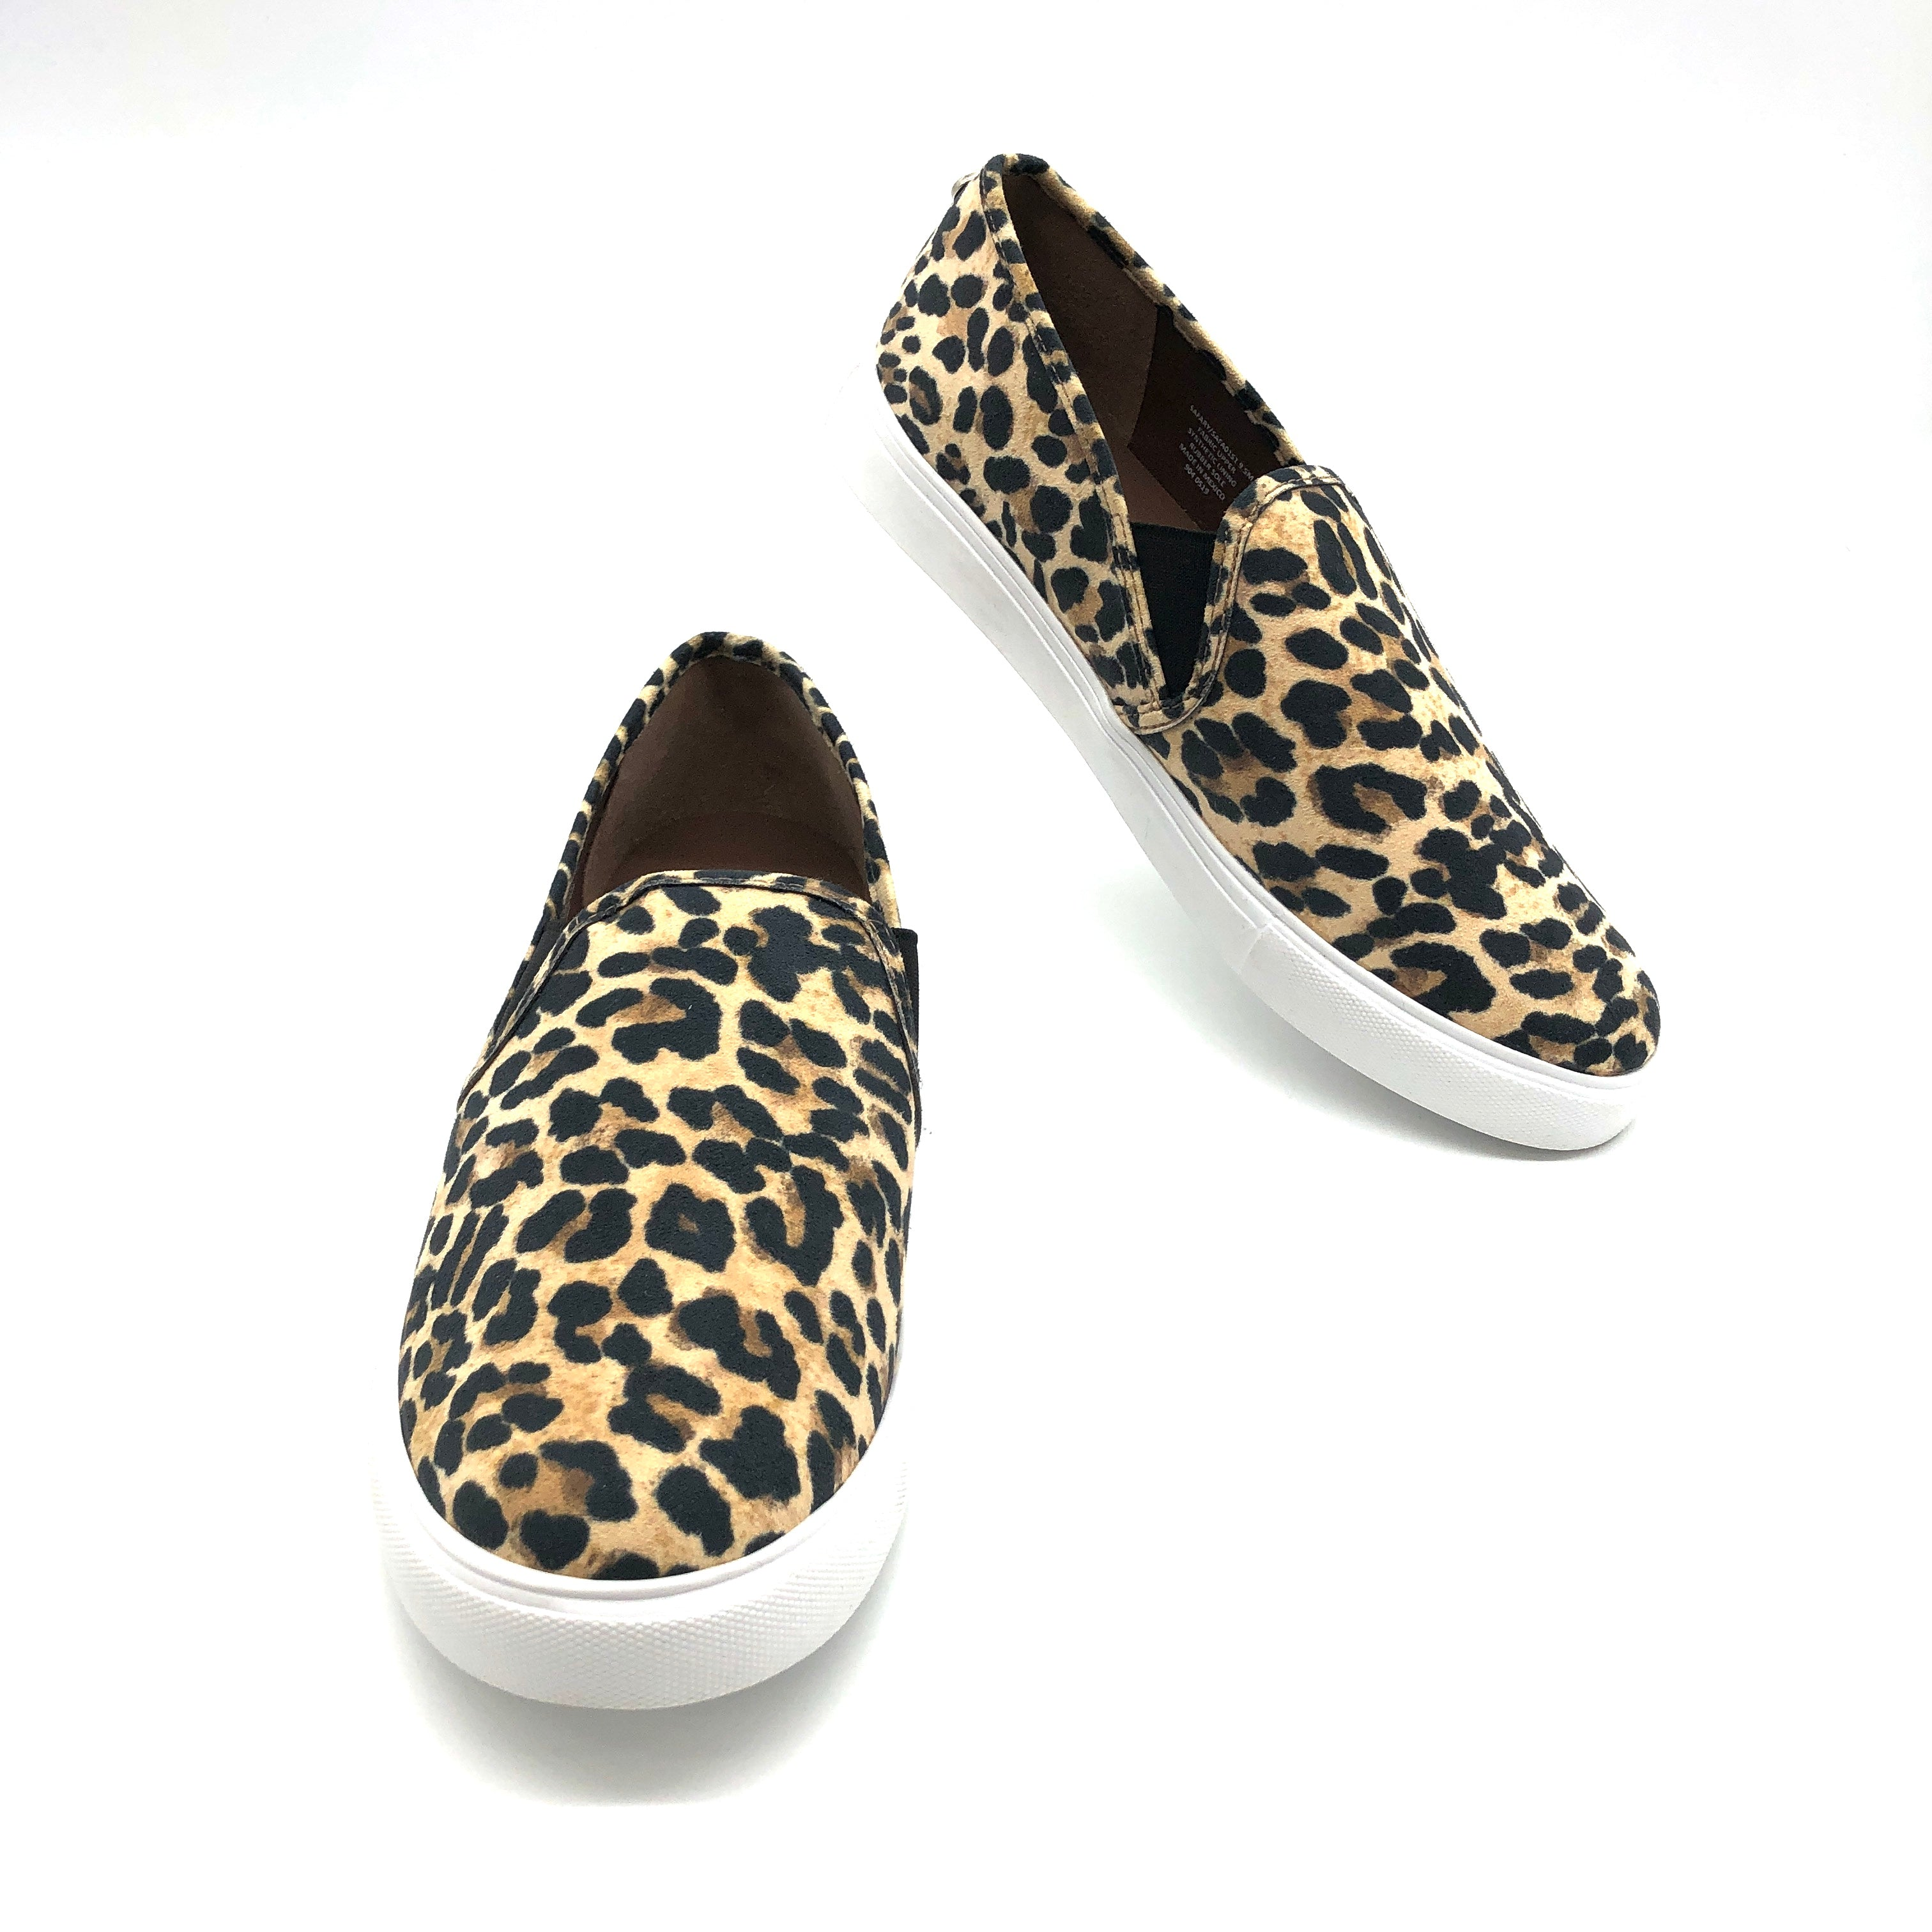 Primary Photo - BRAND: STEVE MADDEN <BR>STYLE: SHOES FLATS <BR>COLOR: ANIMAL PRINT <BR>SIZE: 9.5 <BR>SKU: 262-26275-75062<BR><BR>AS IS FINAL SALE <BR>LIKE NEW <BR>